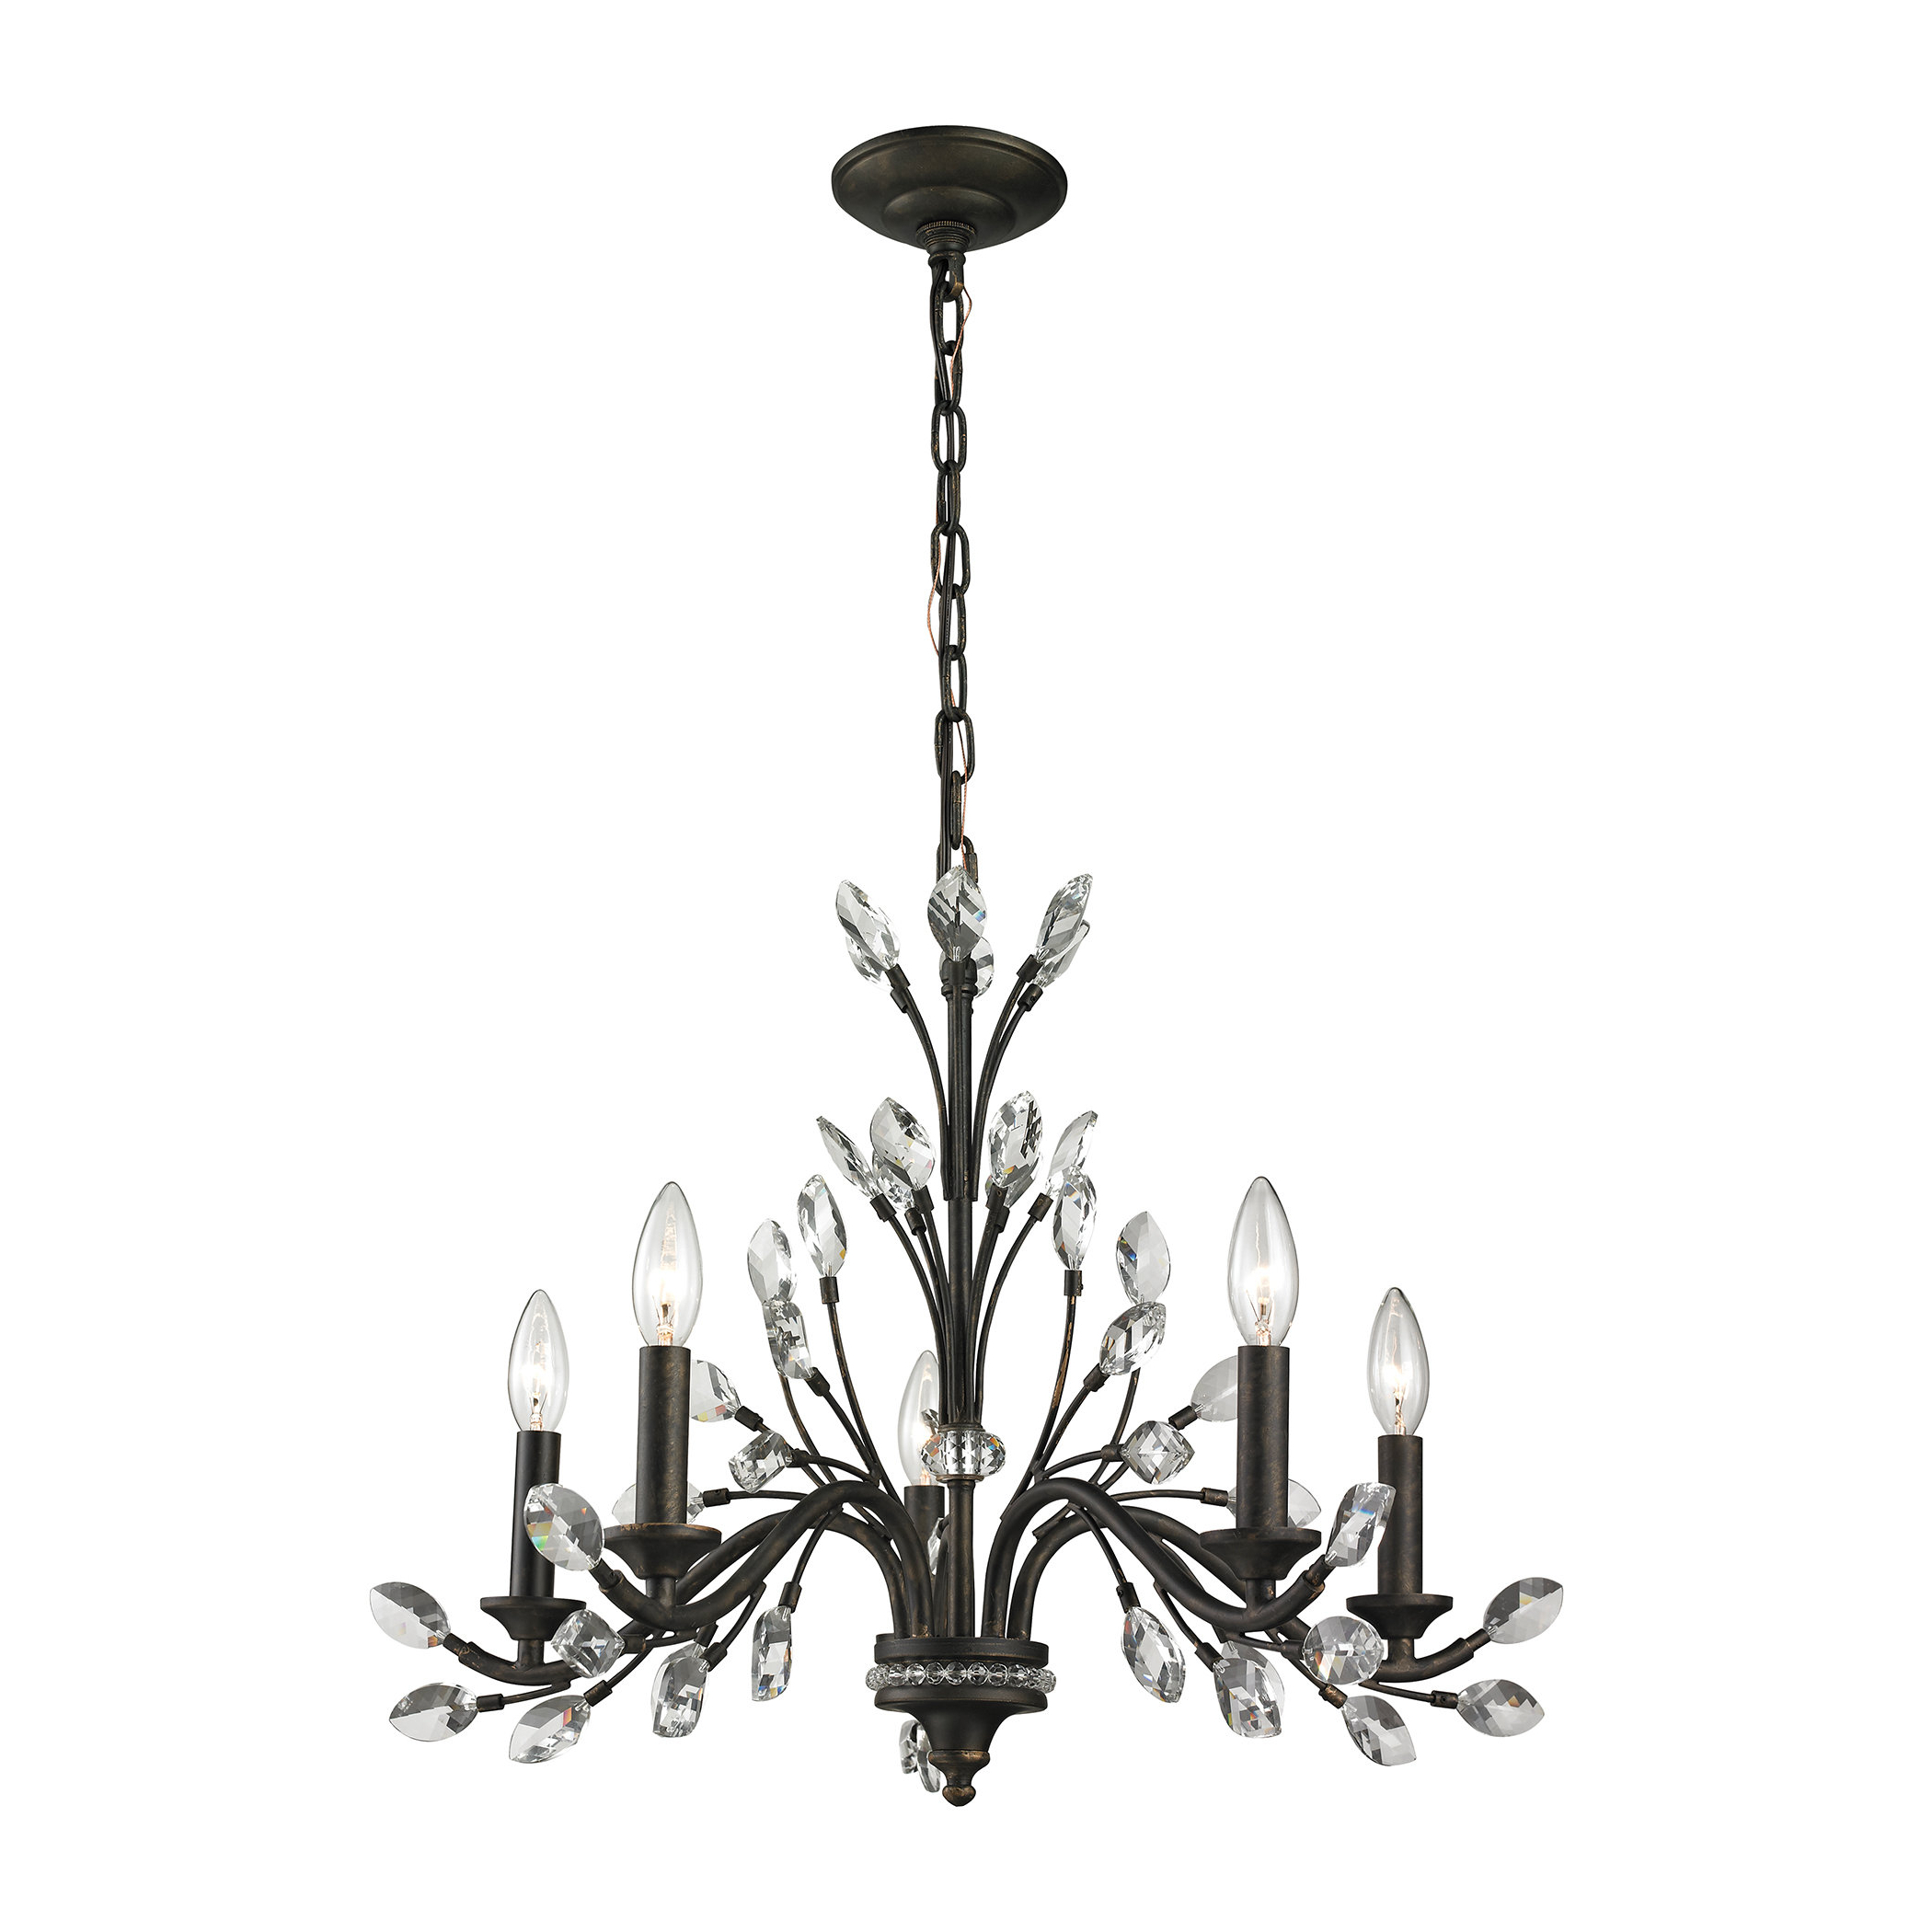 Famous Berger 5 Light Candle Style Chandeliers In Hammel 5 Light Candle Style Chandelier (Gallery 7 of 20)